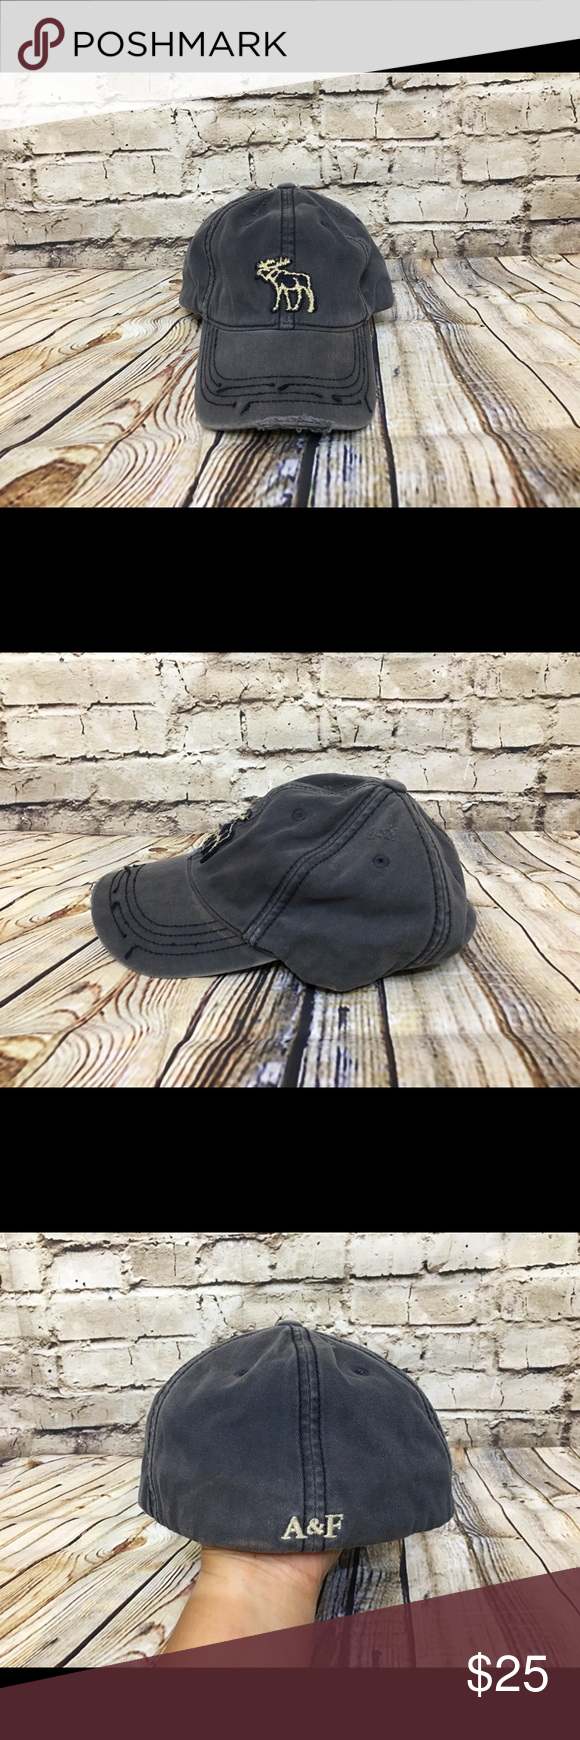 93a4da668a4 Abercrombie embroidered moose fitted baseball hat Preowned Abercrombie  baseball cap. With embroidered moose logo in